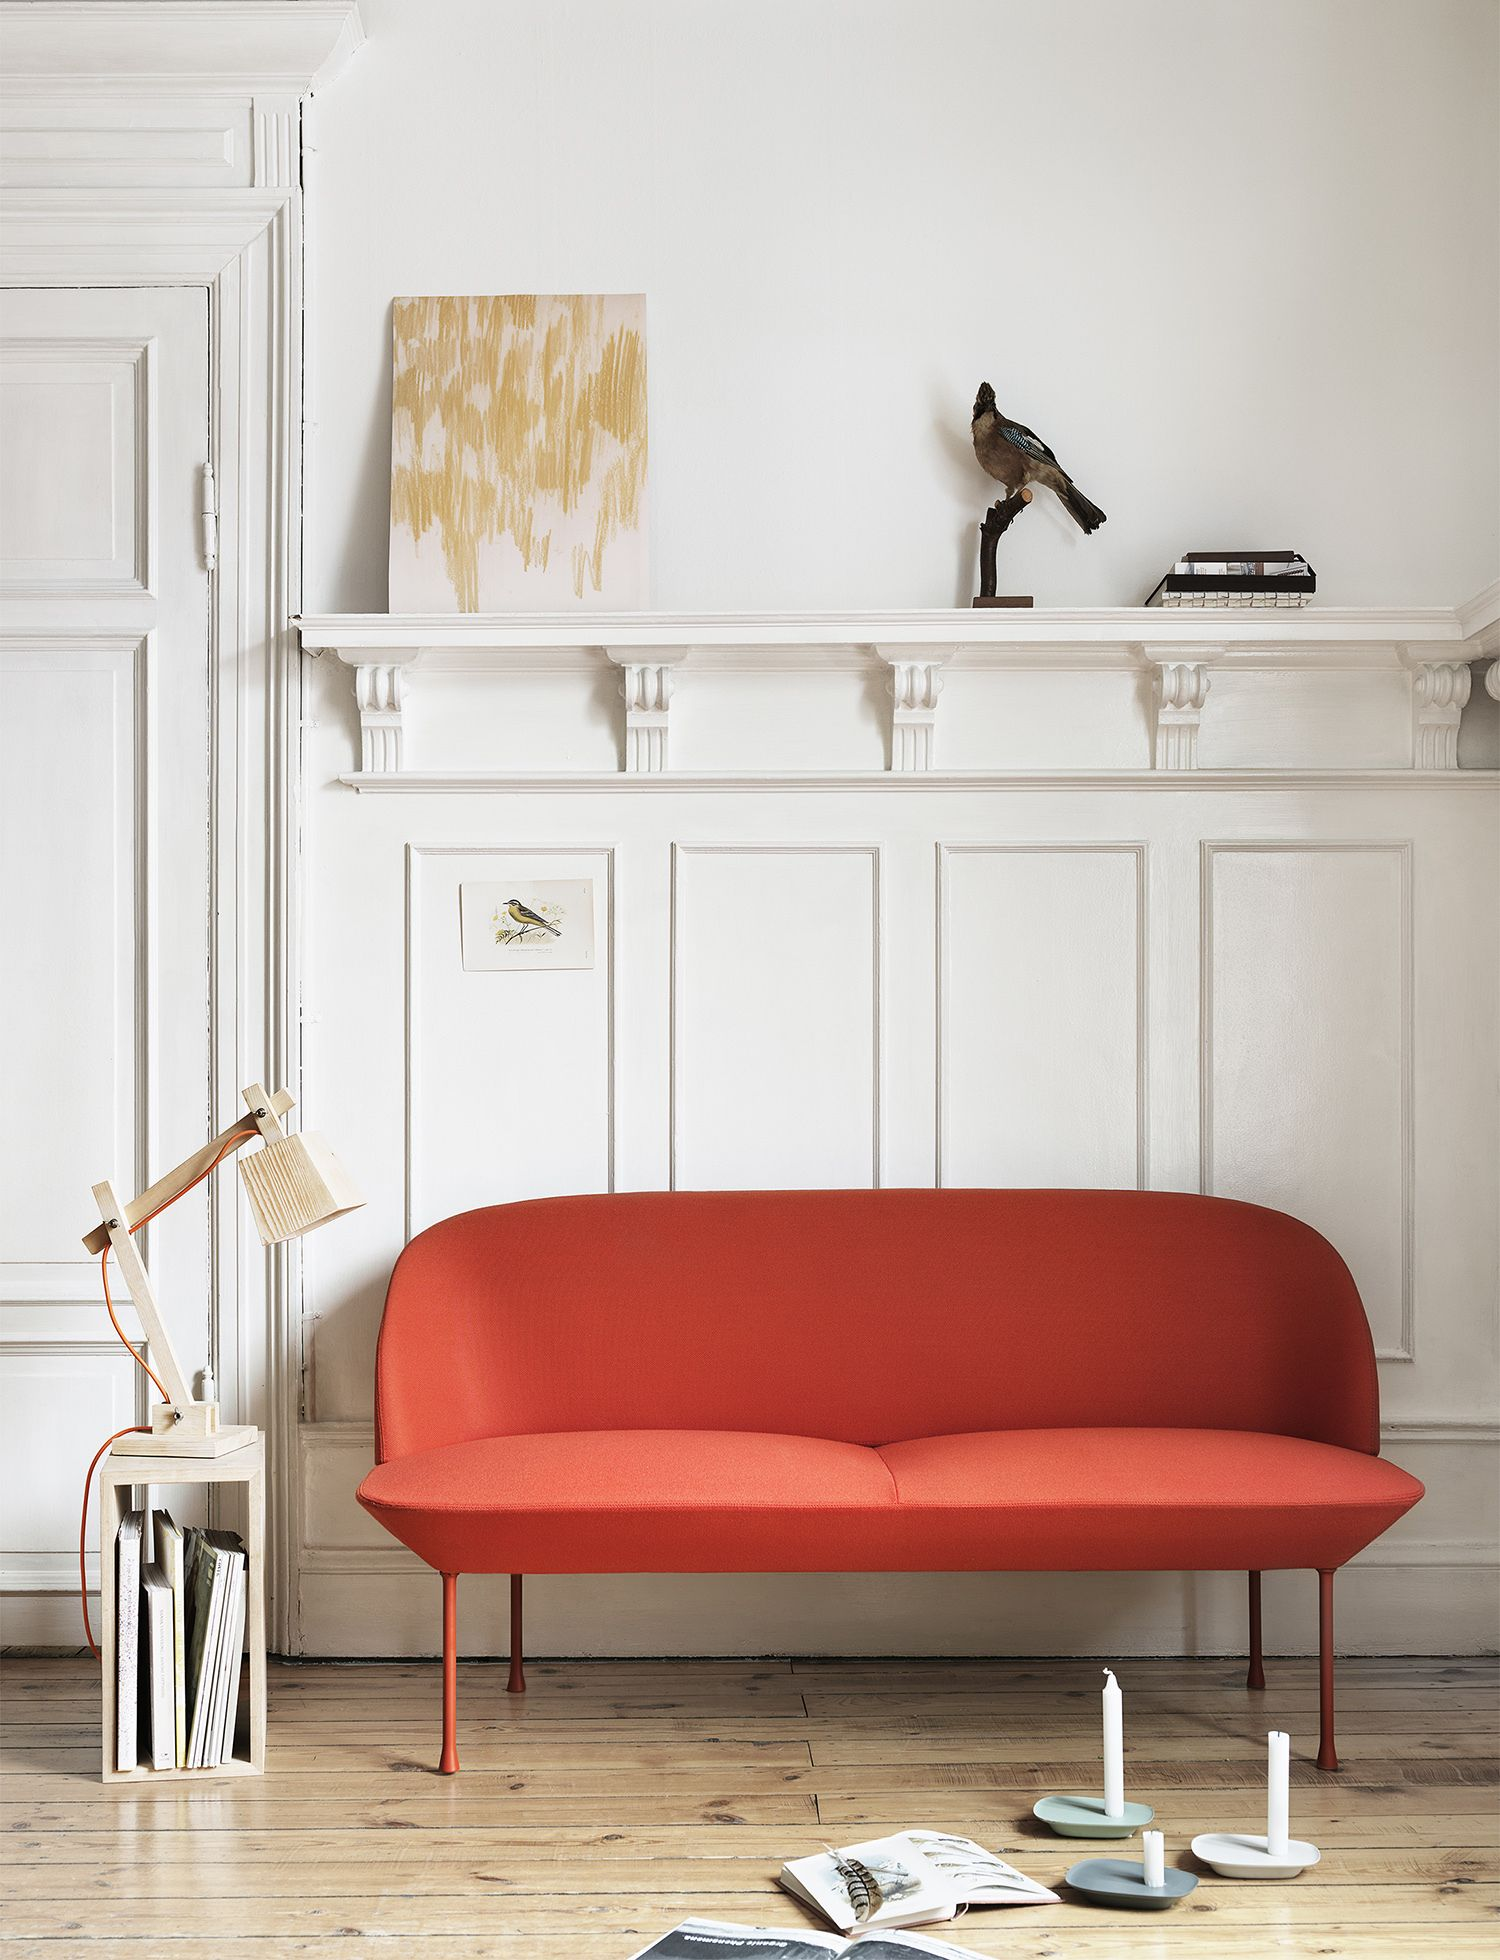 The Oslo Sofa By Muuto Combines Light And Modern Design With An Ergonomically Focused Comfortable Lounging Experience Nordic Sofa Sofa Design Furniture Design